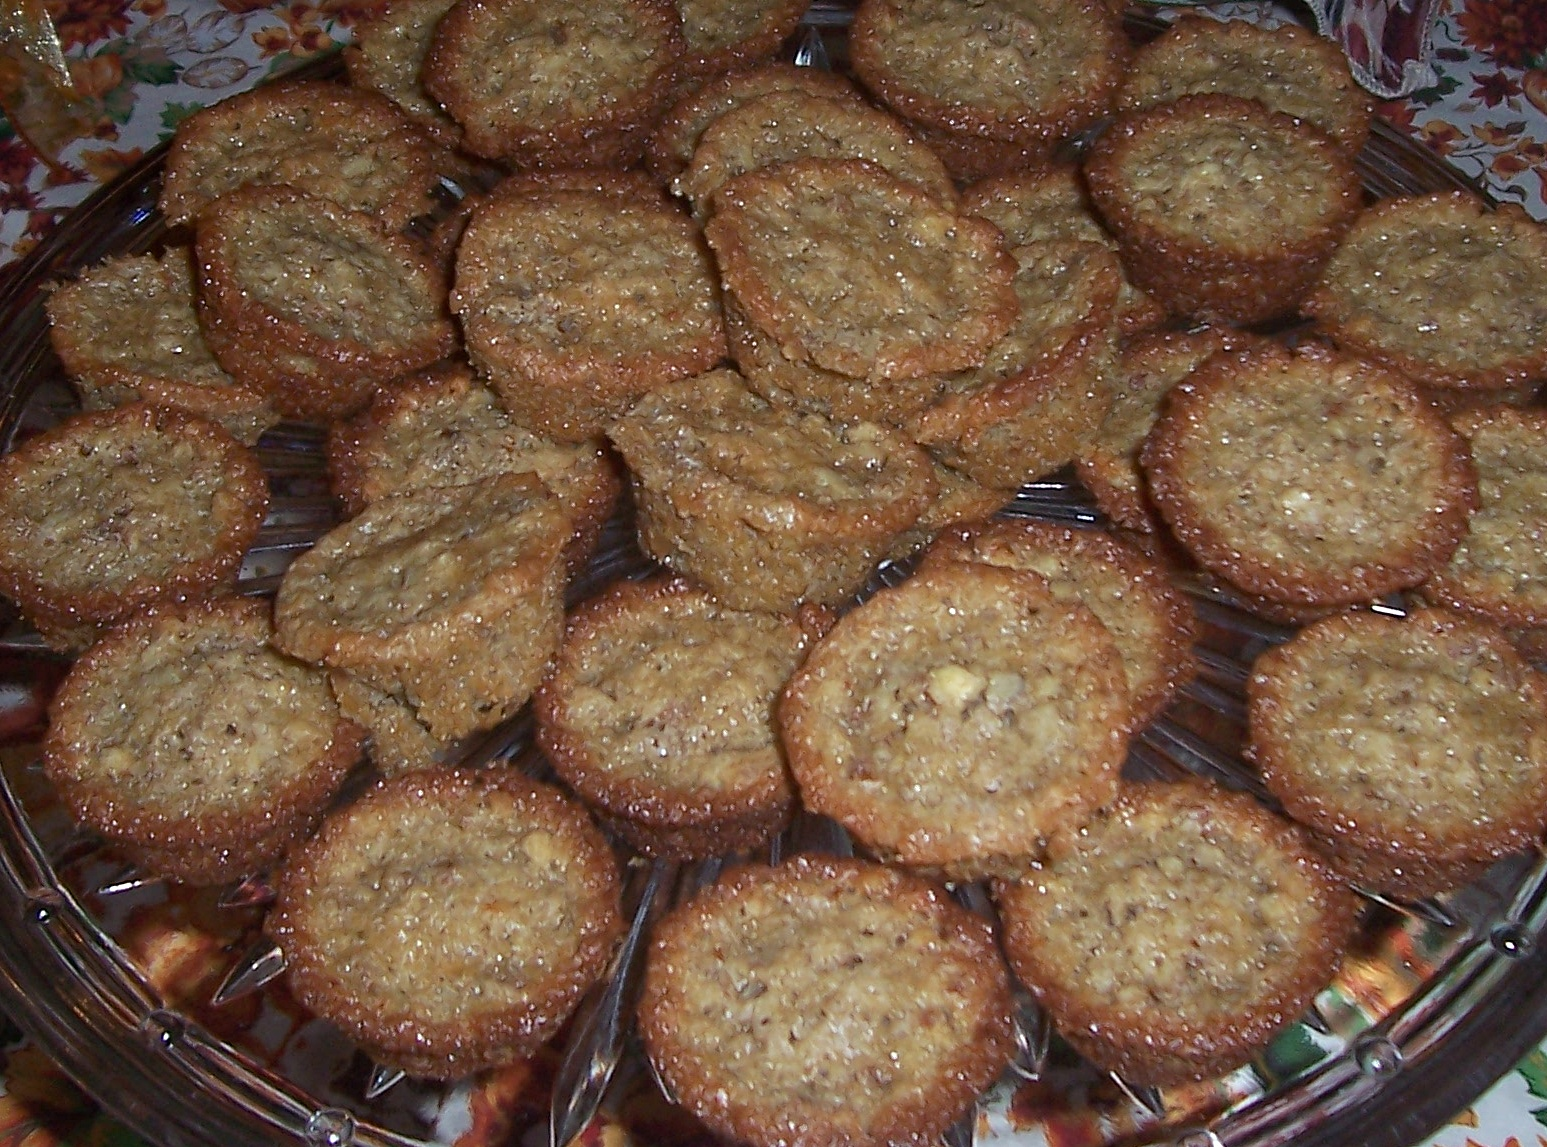 Concetta's Cafe: Pecan Pie Muffins